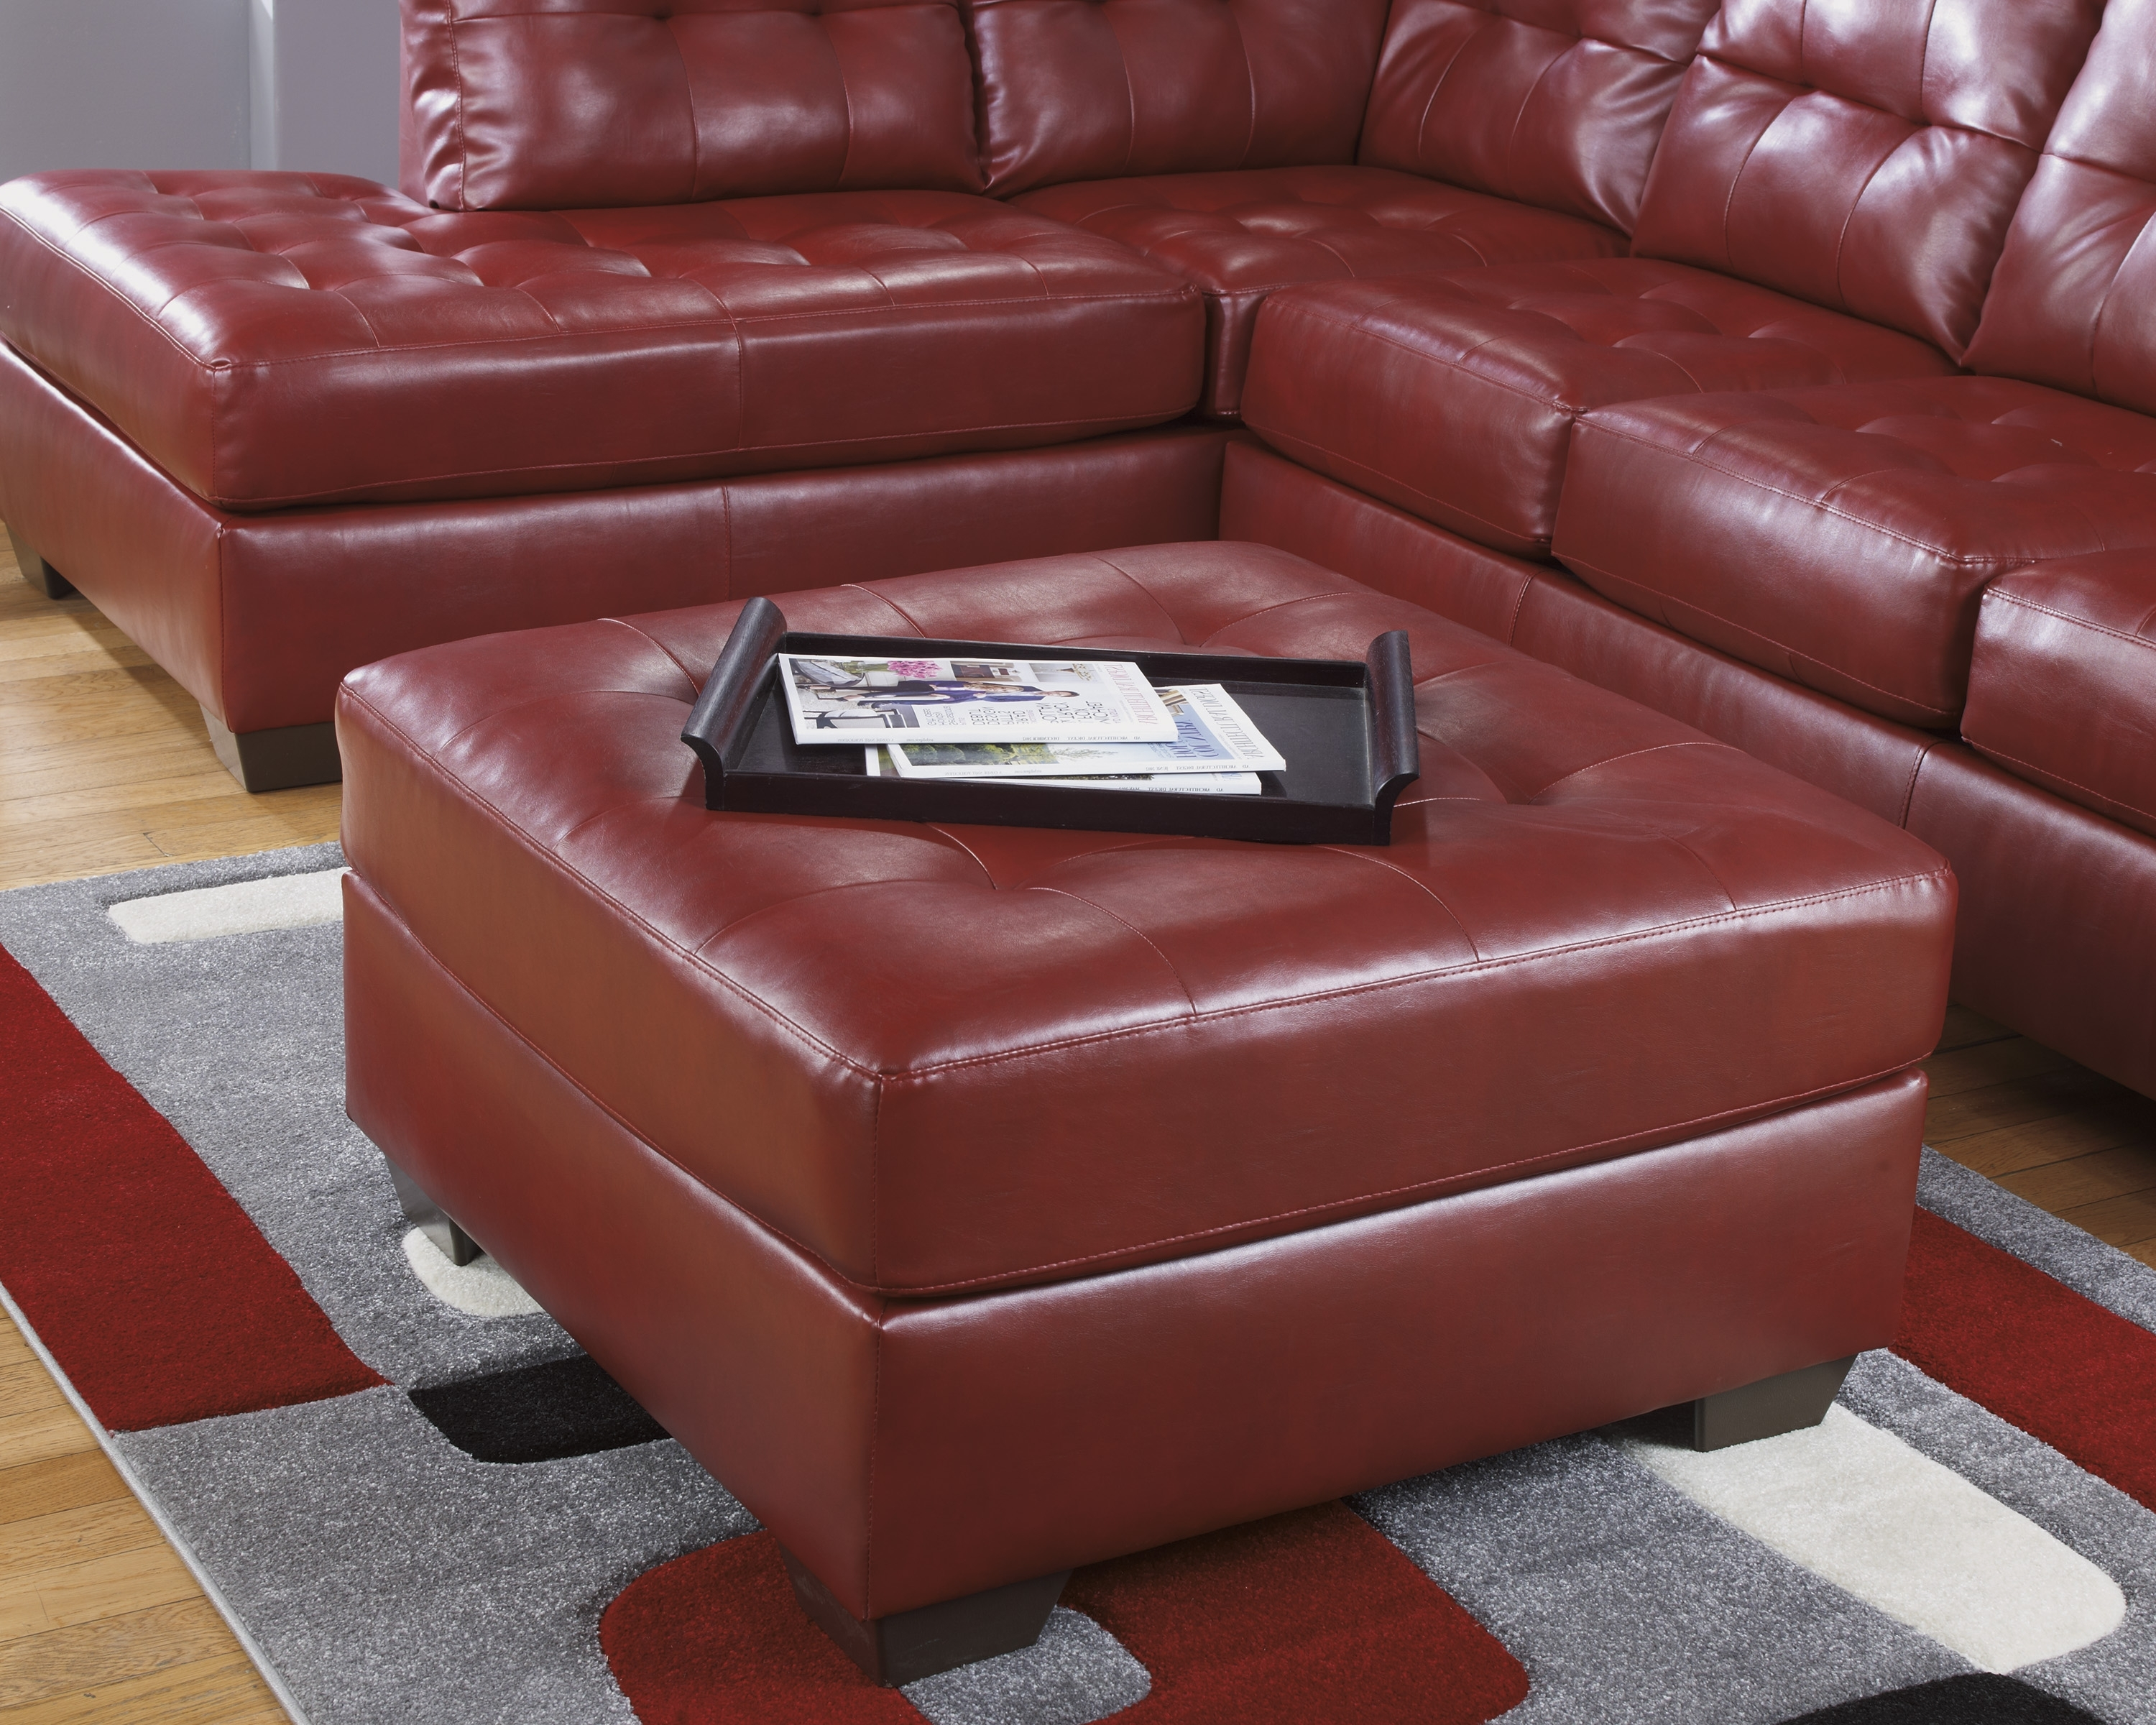 Ashley Furniture Leather Sectionals, Ashley Furniture Sofa Throughout Favorite Red Sectional Sofas With Ottoman (View 12 of 15)